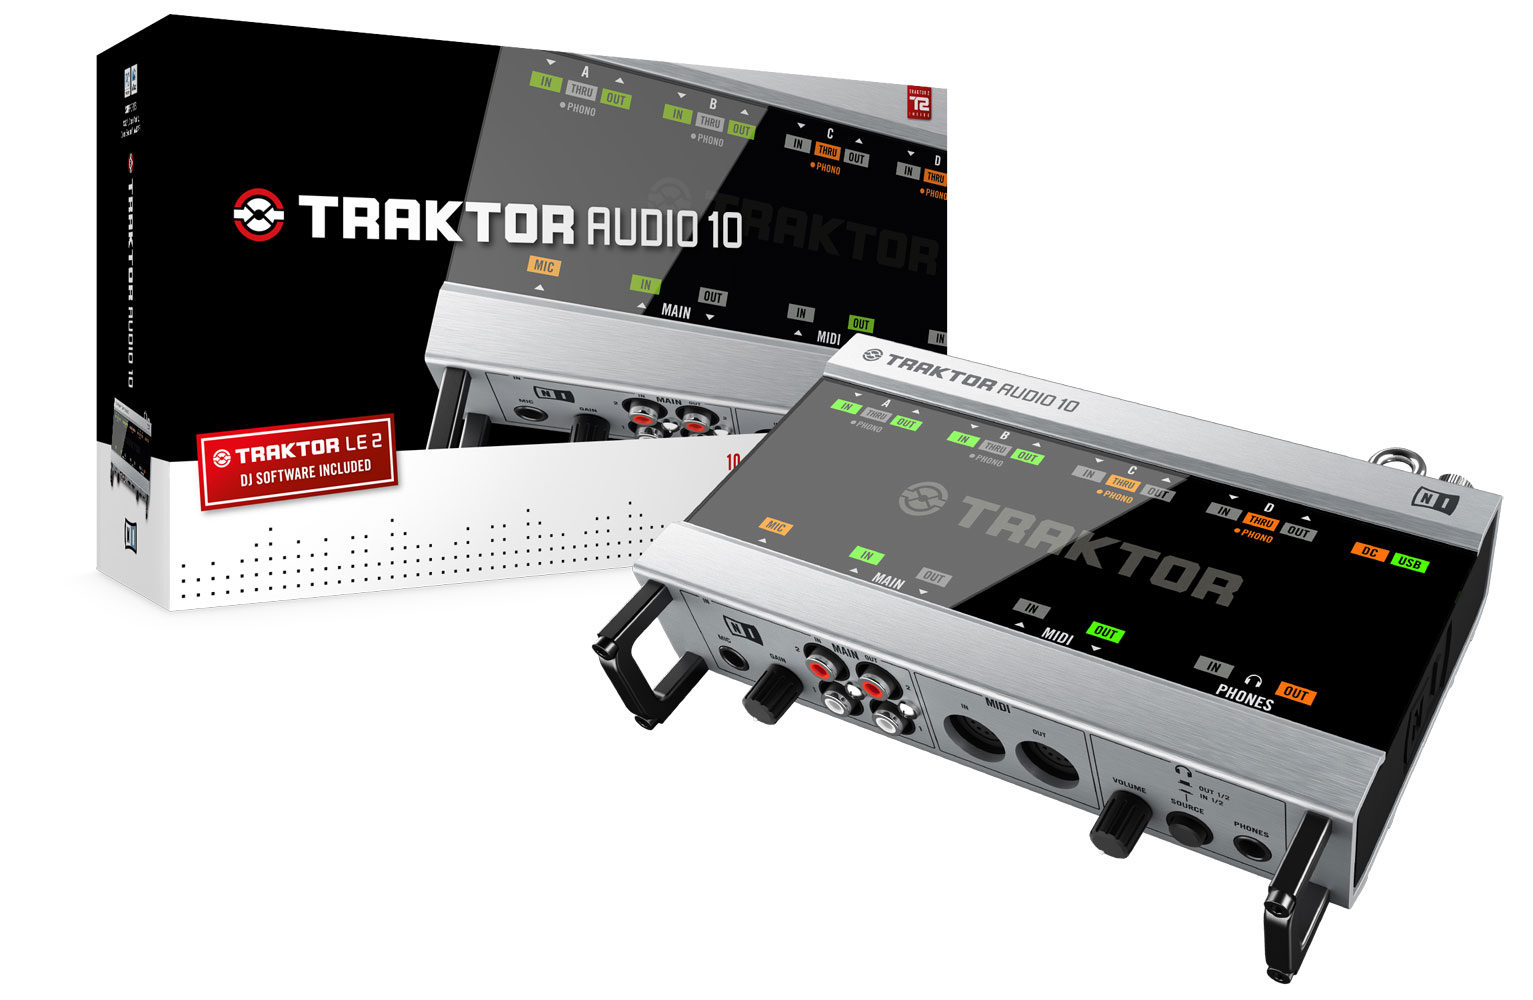 carte son traktor audio 10